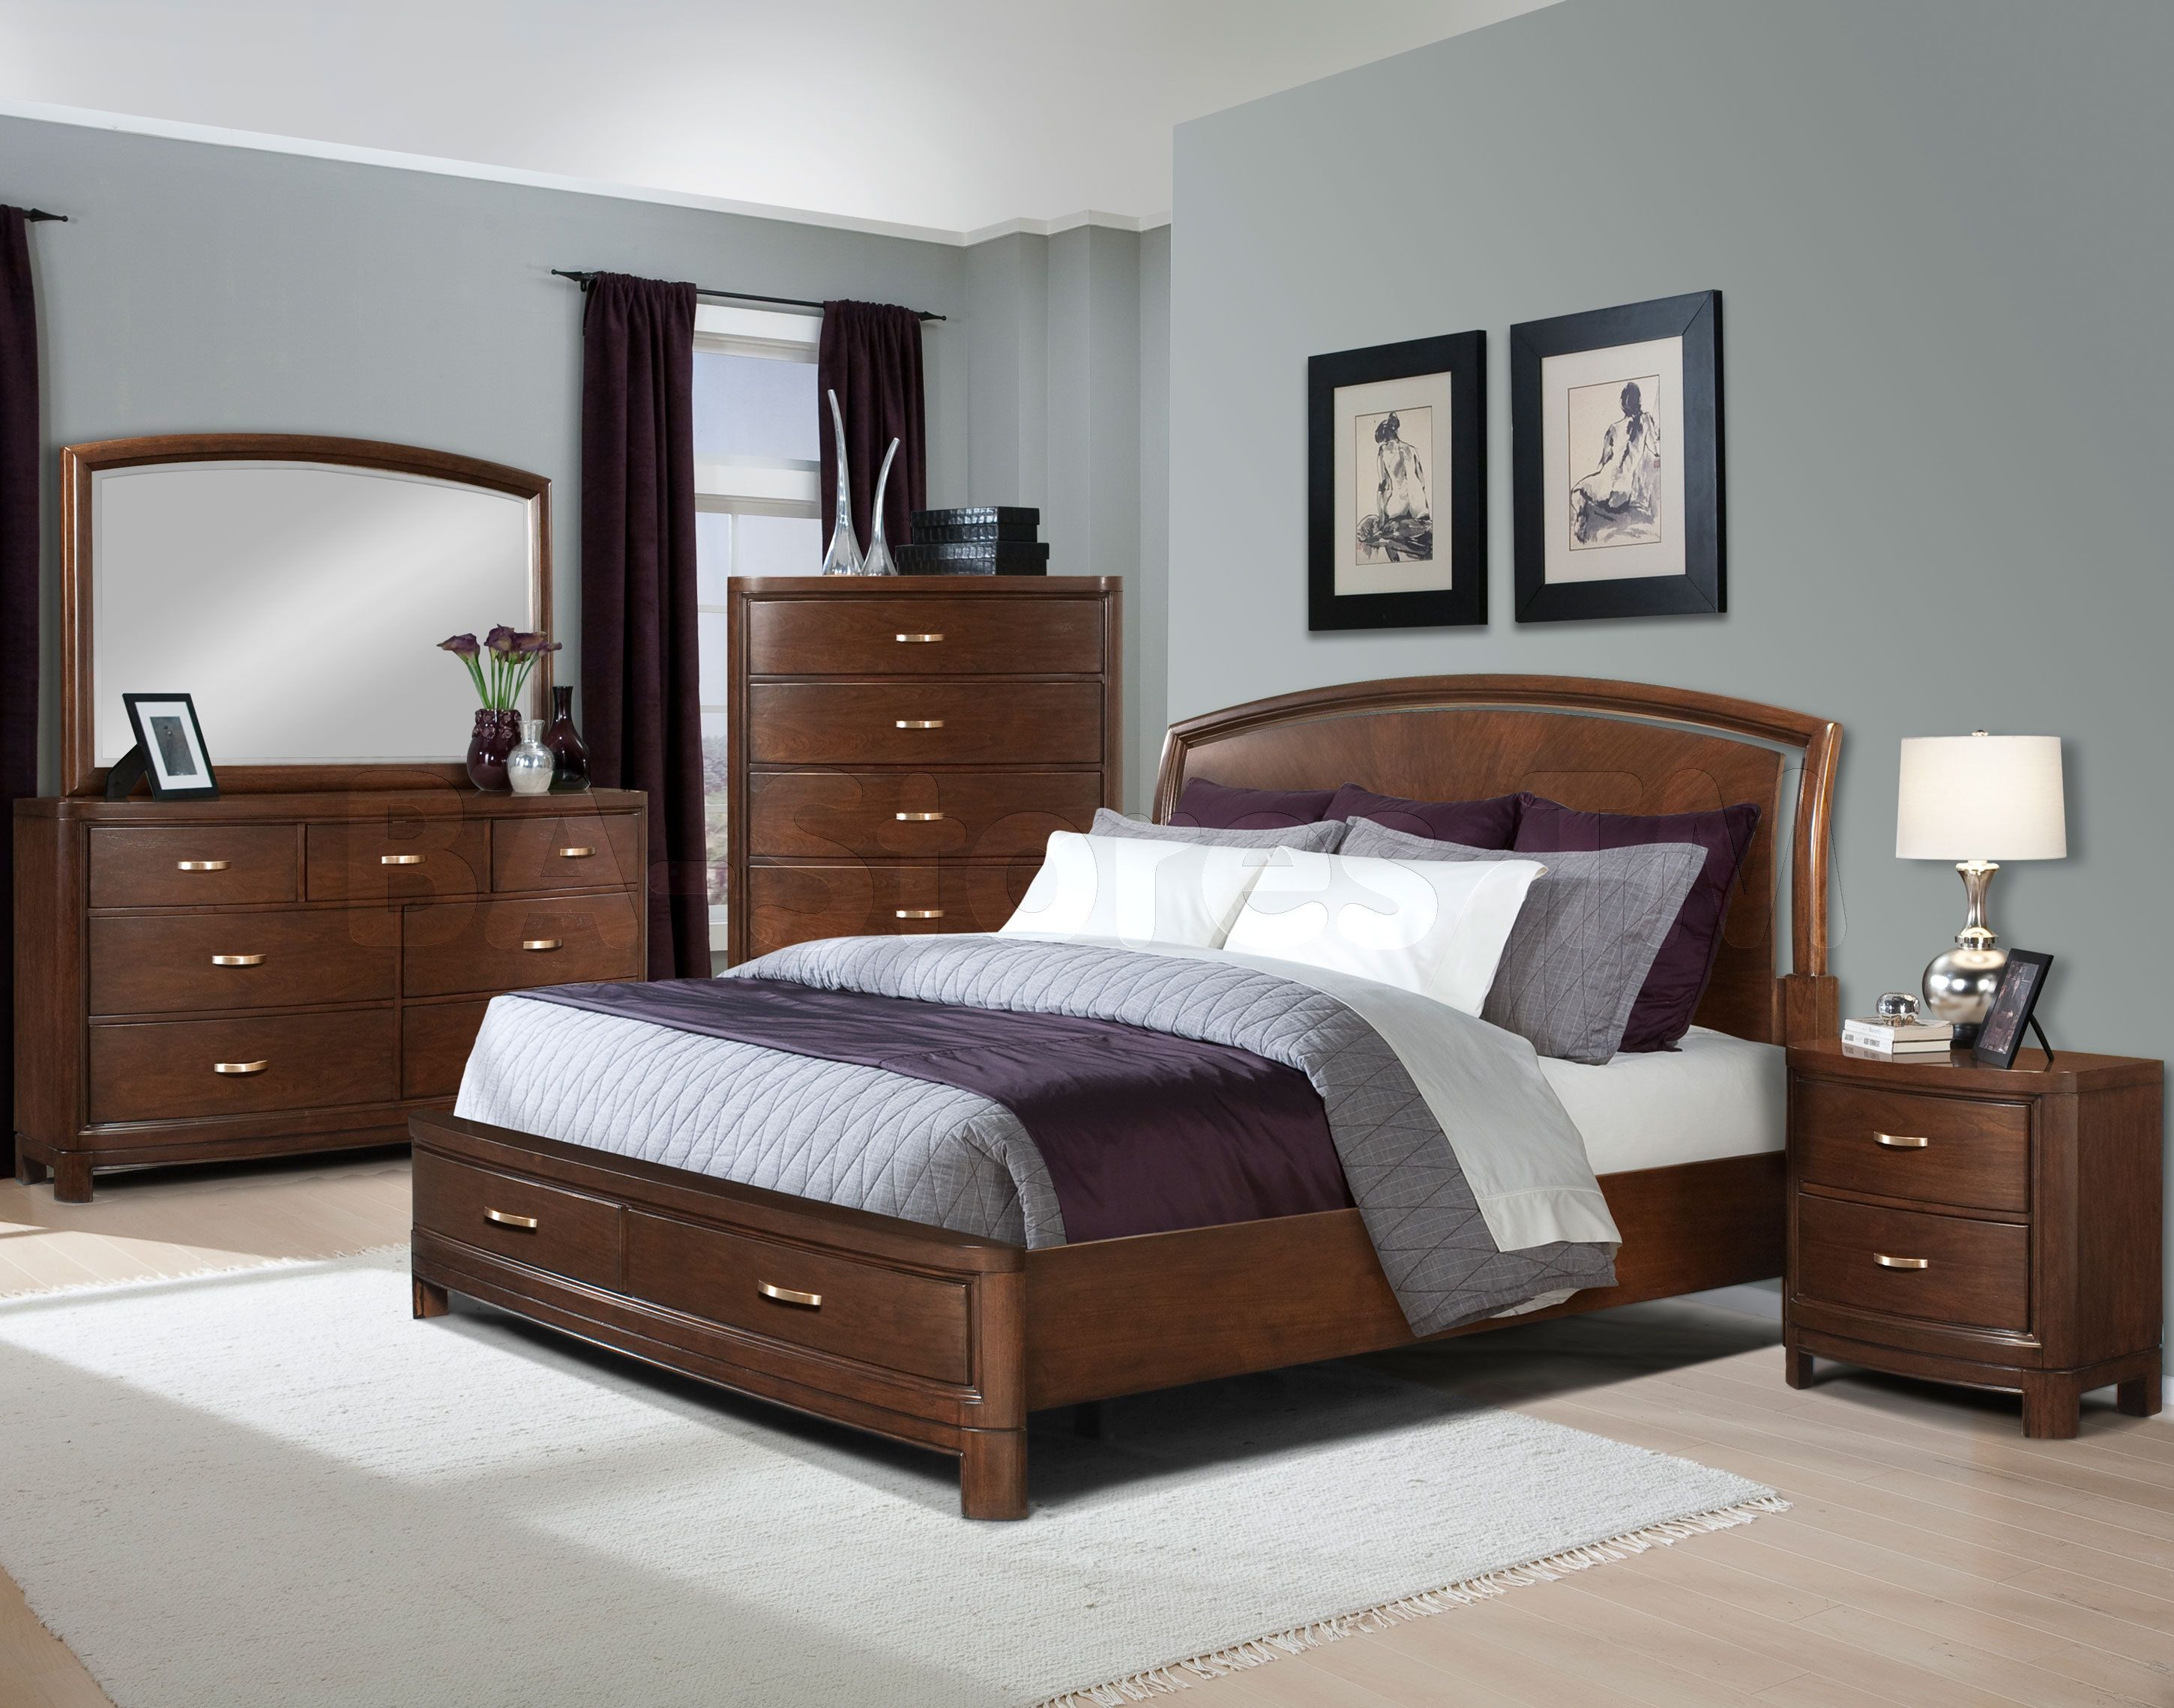 Contemporary Bedroom With Dark Wood Bed Google Search Bed 5 Pinterest Dark Wood Bed